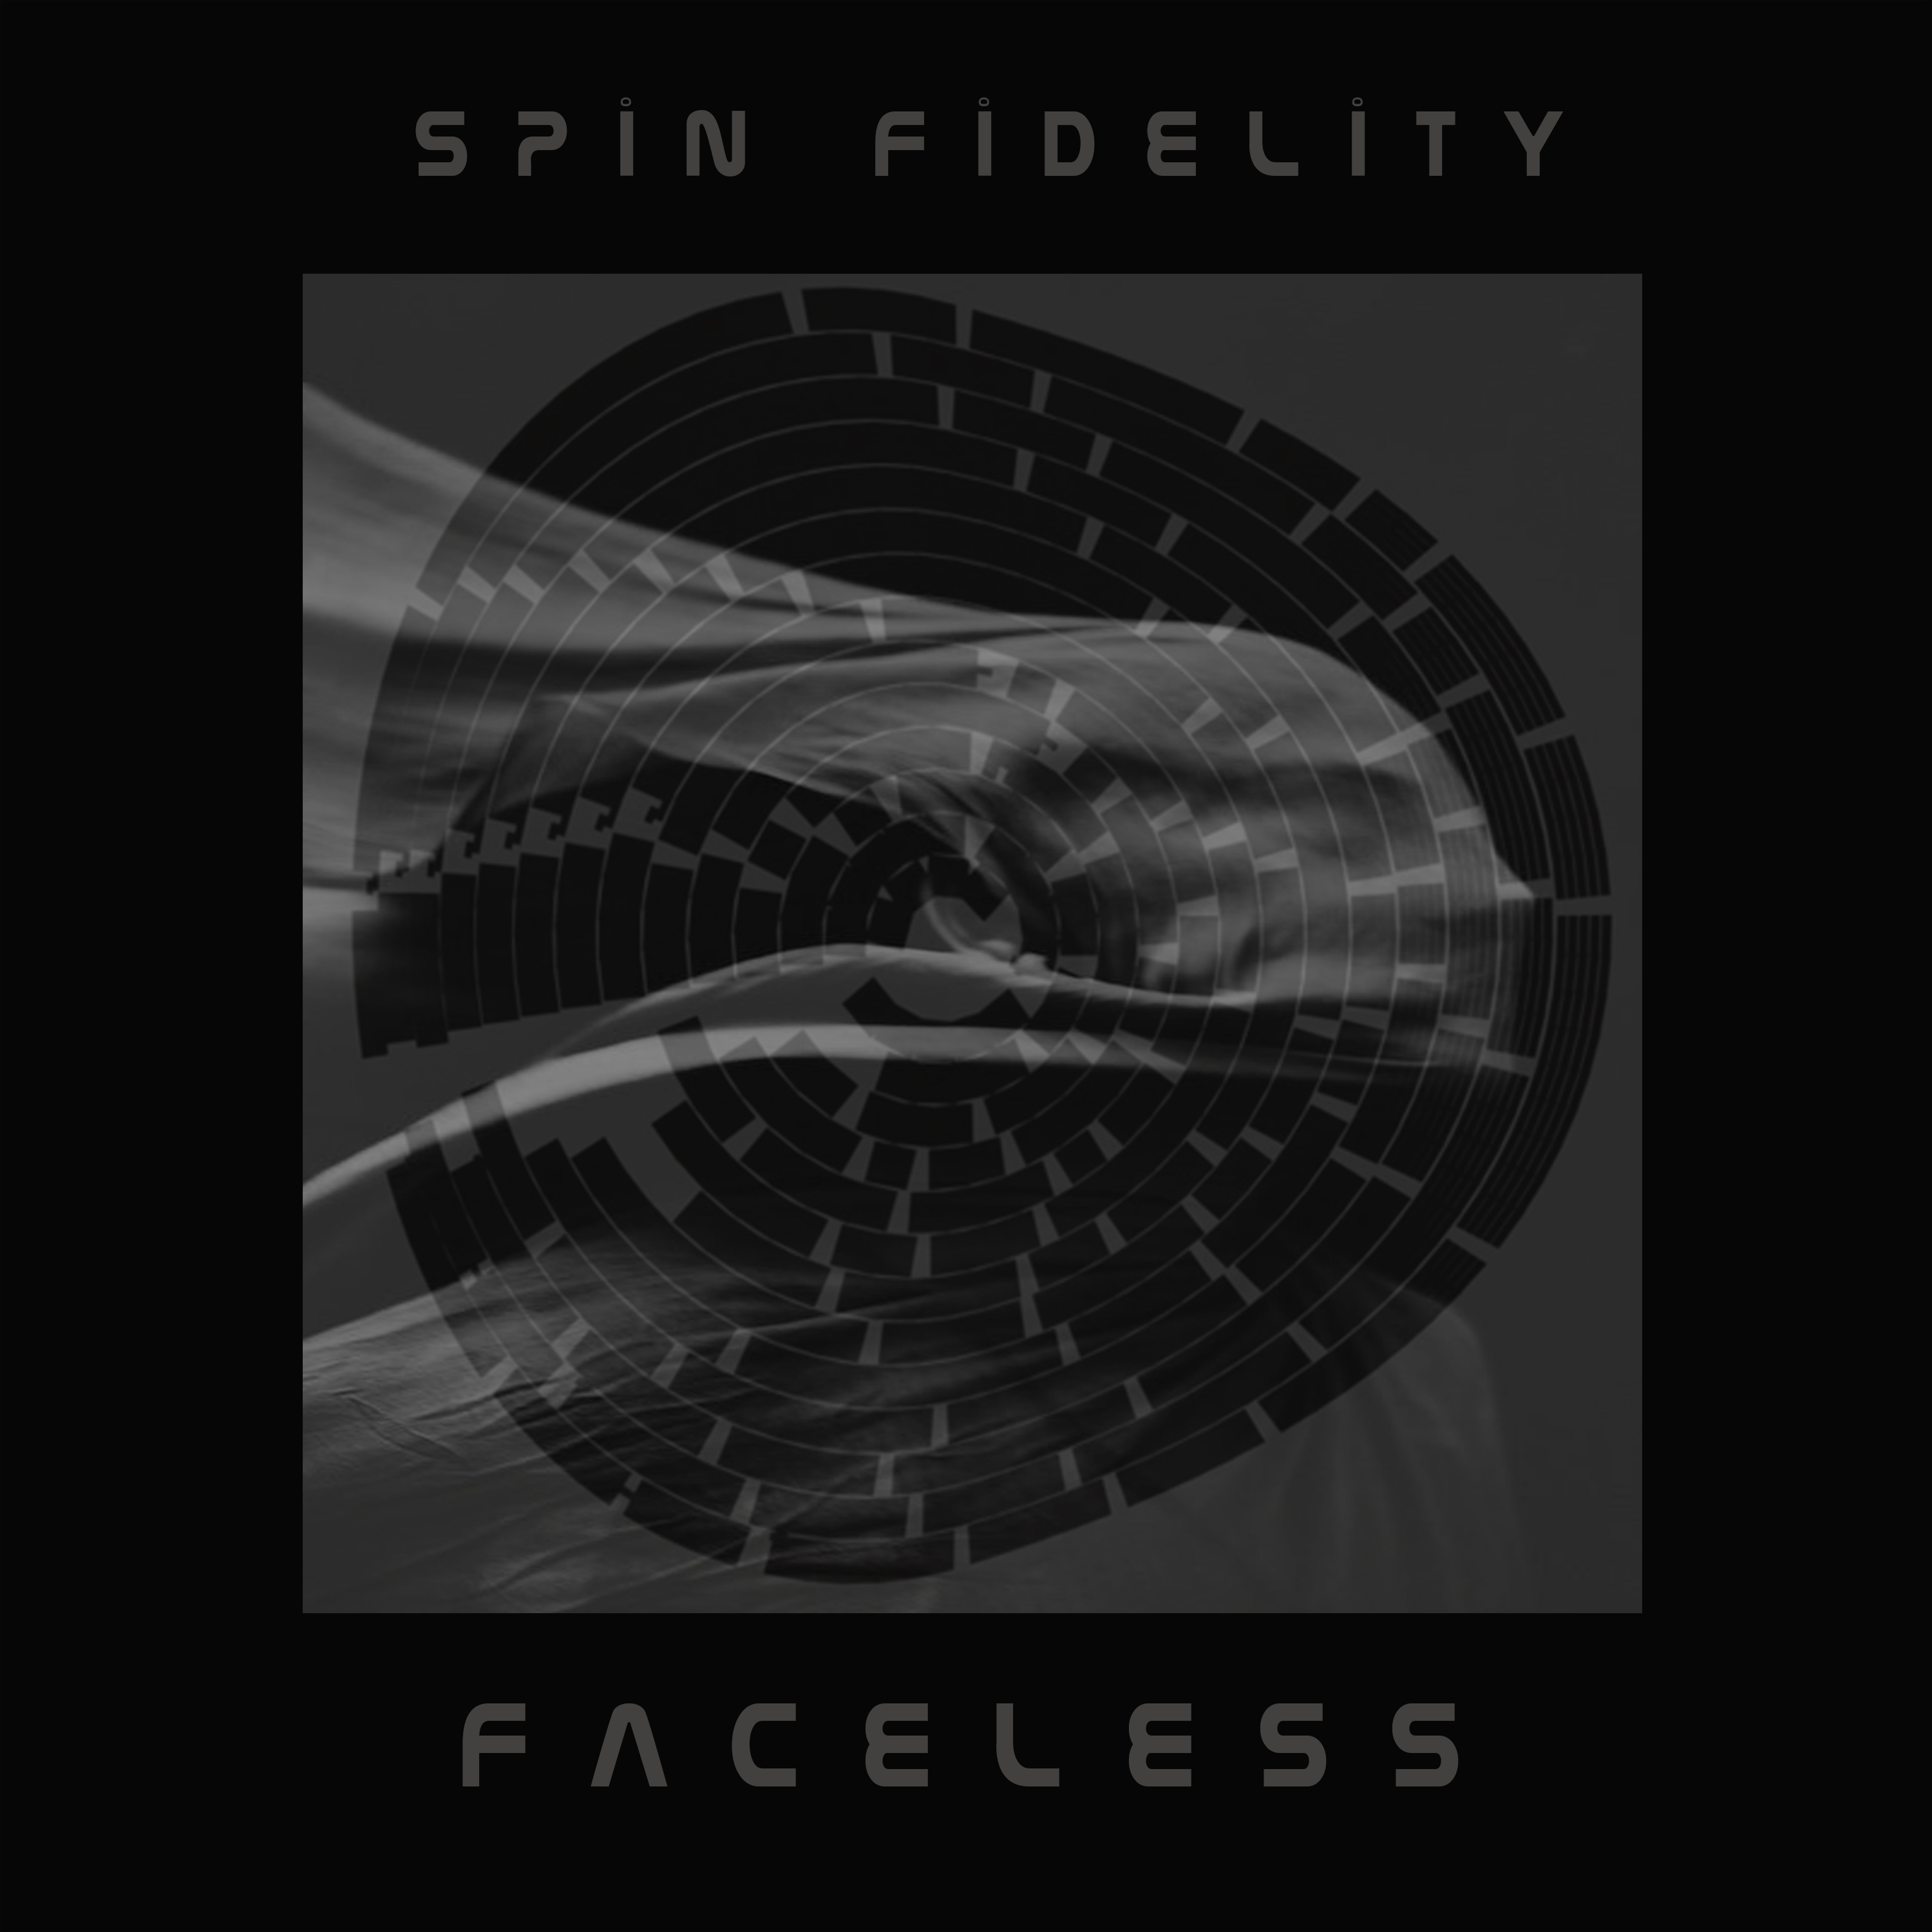 Spin Fidelity